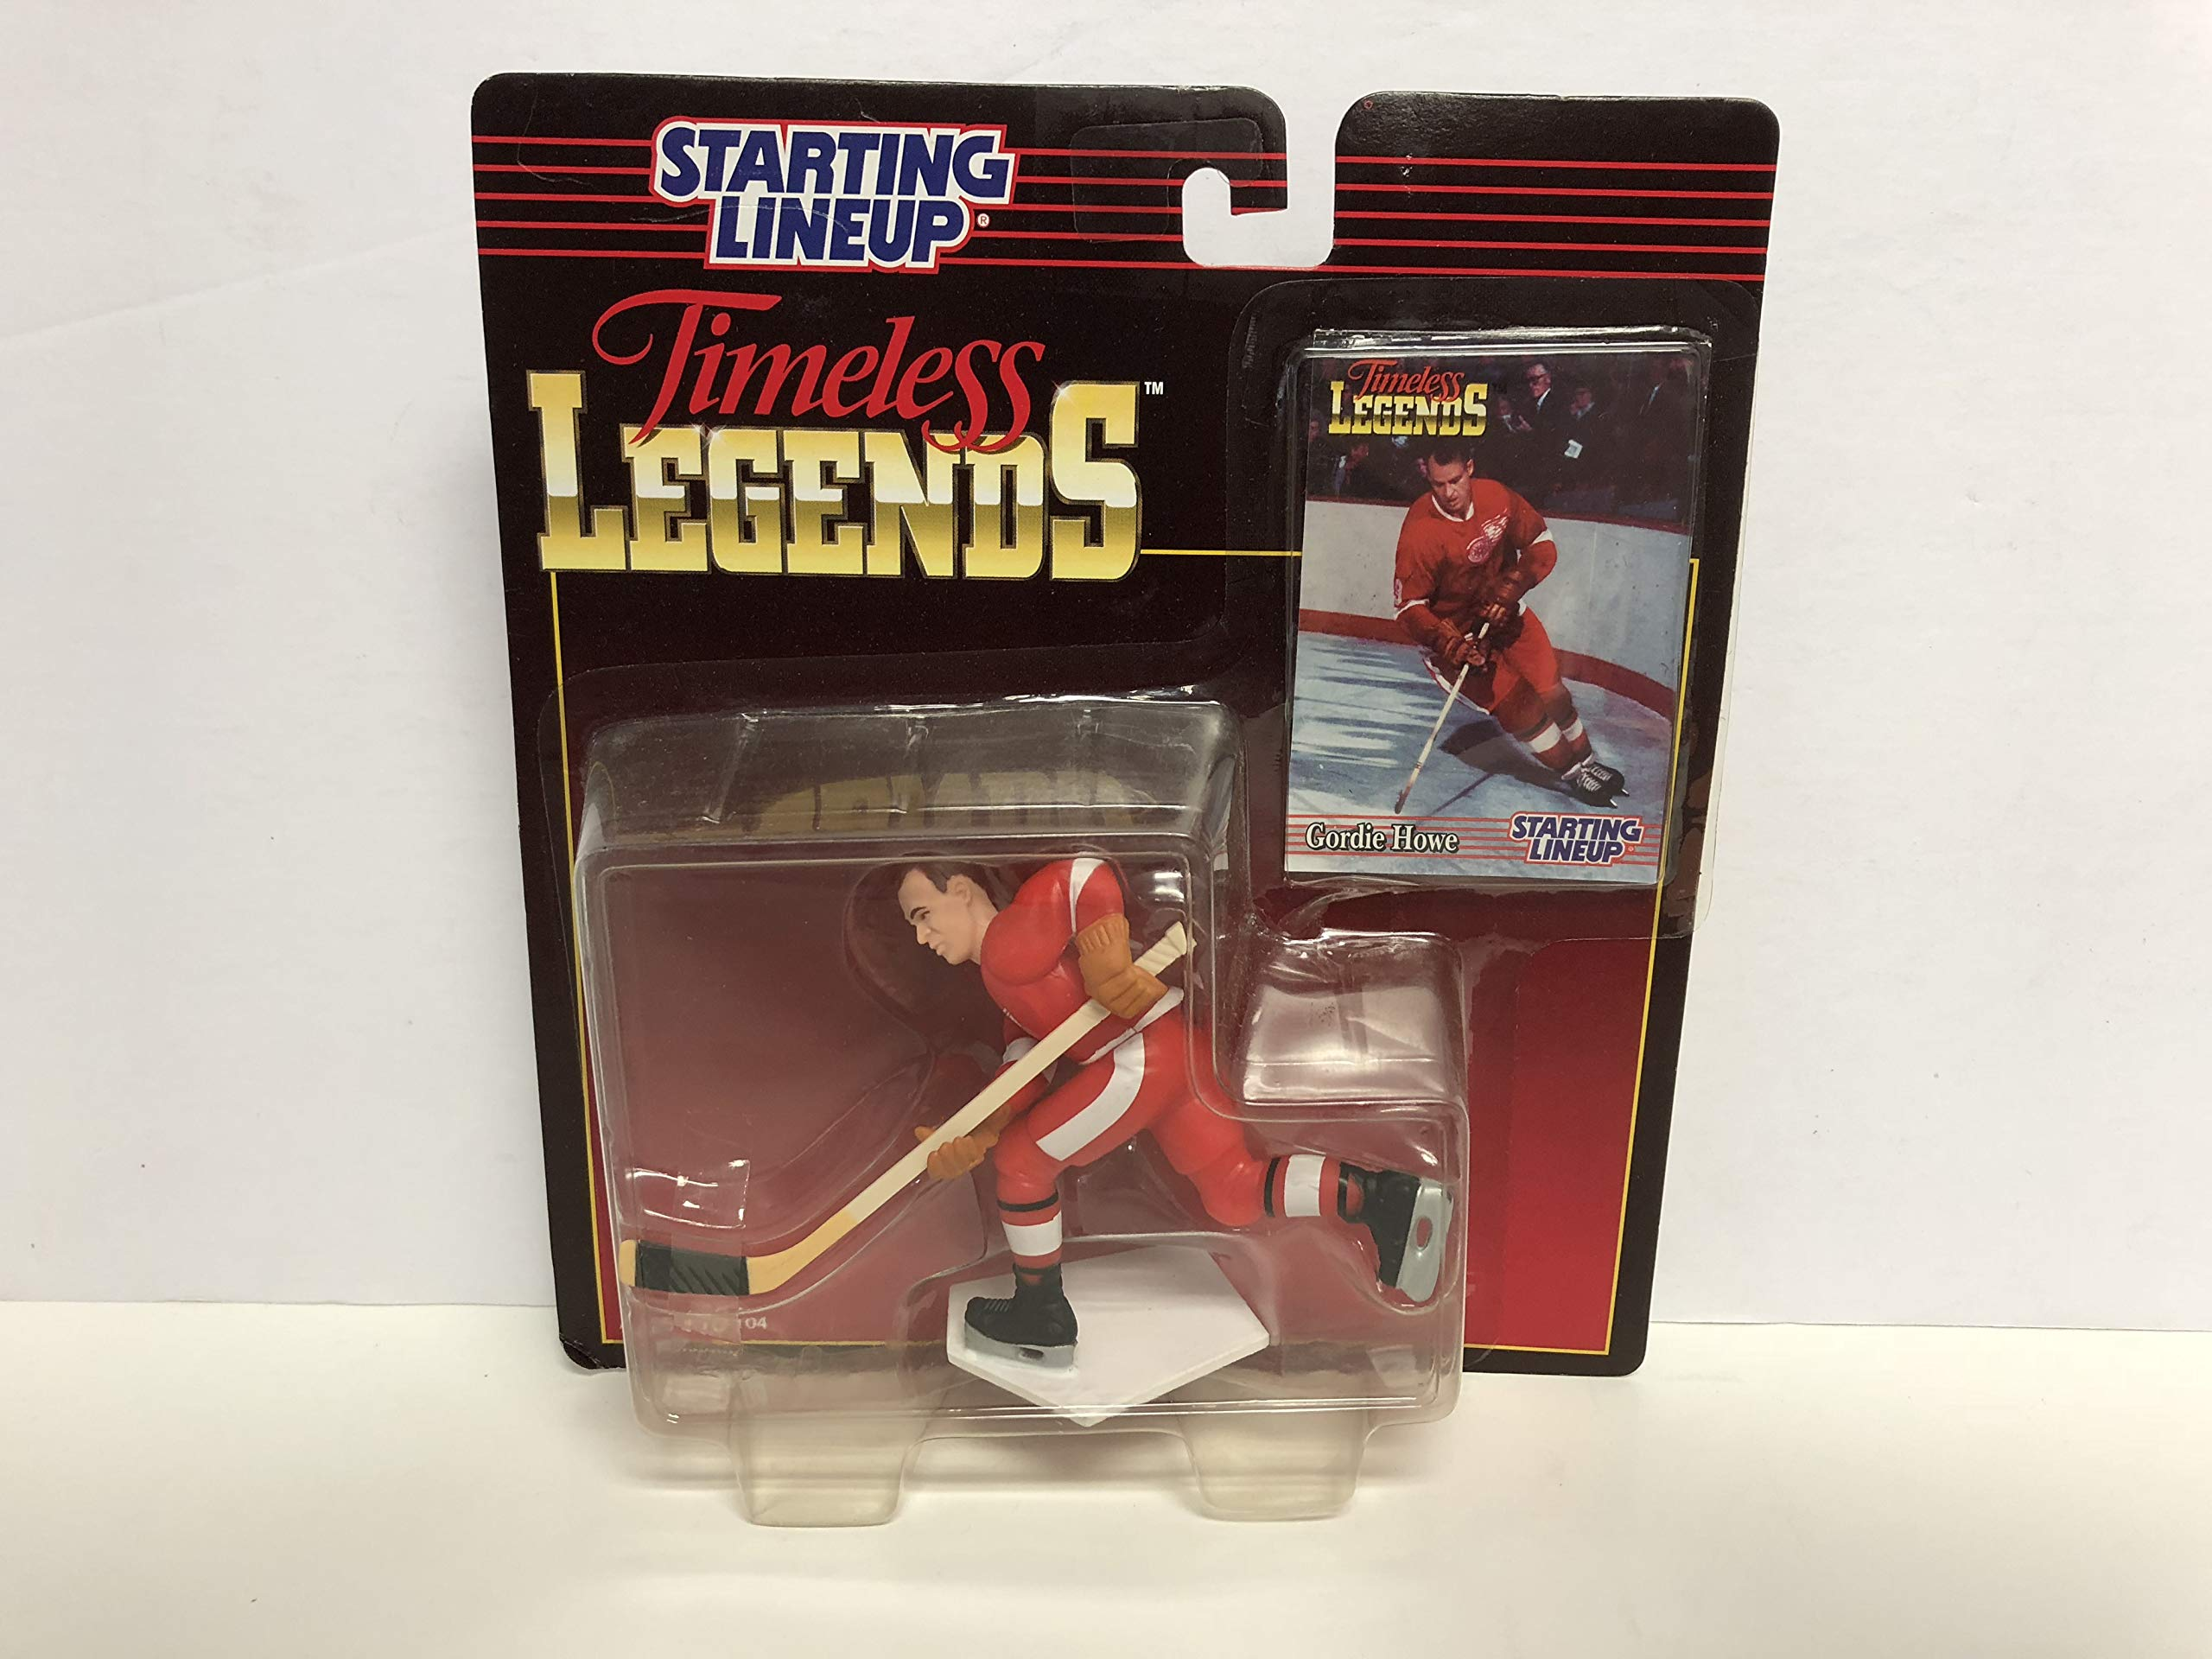 Gordie Howe MR HOCKEY Detroit Red Wings Legend Collectible Toy Action Figure with Trading Card